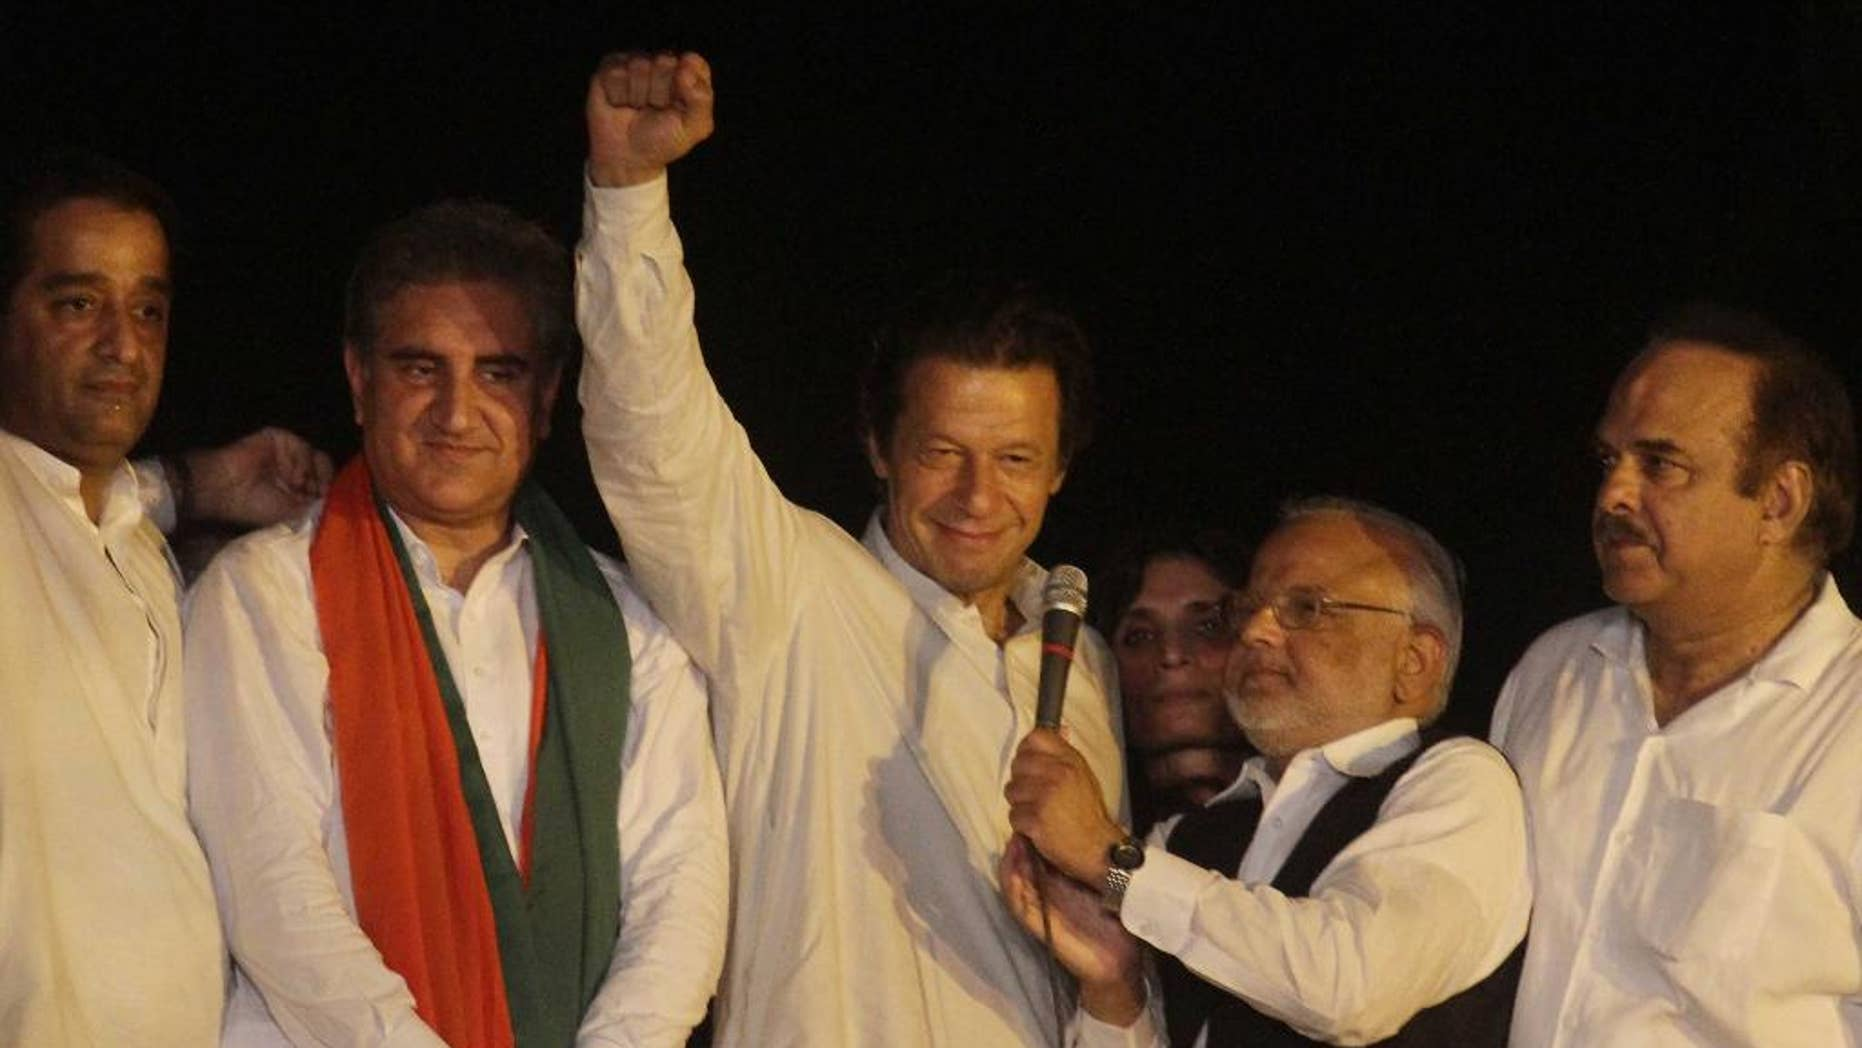 Aug. 13, 2014: Pakistan's cricketer-turned-politician Imran Khan, center, gestures during an address to his supporters in Lahore, Pakistan. (AP)